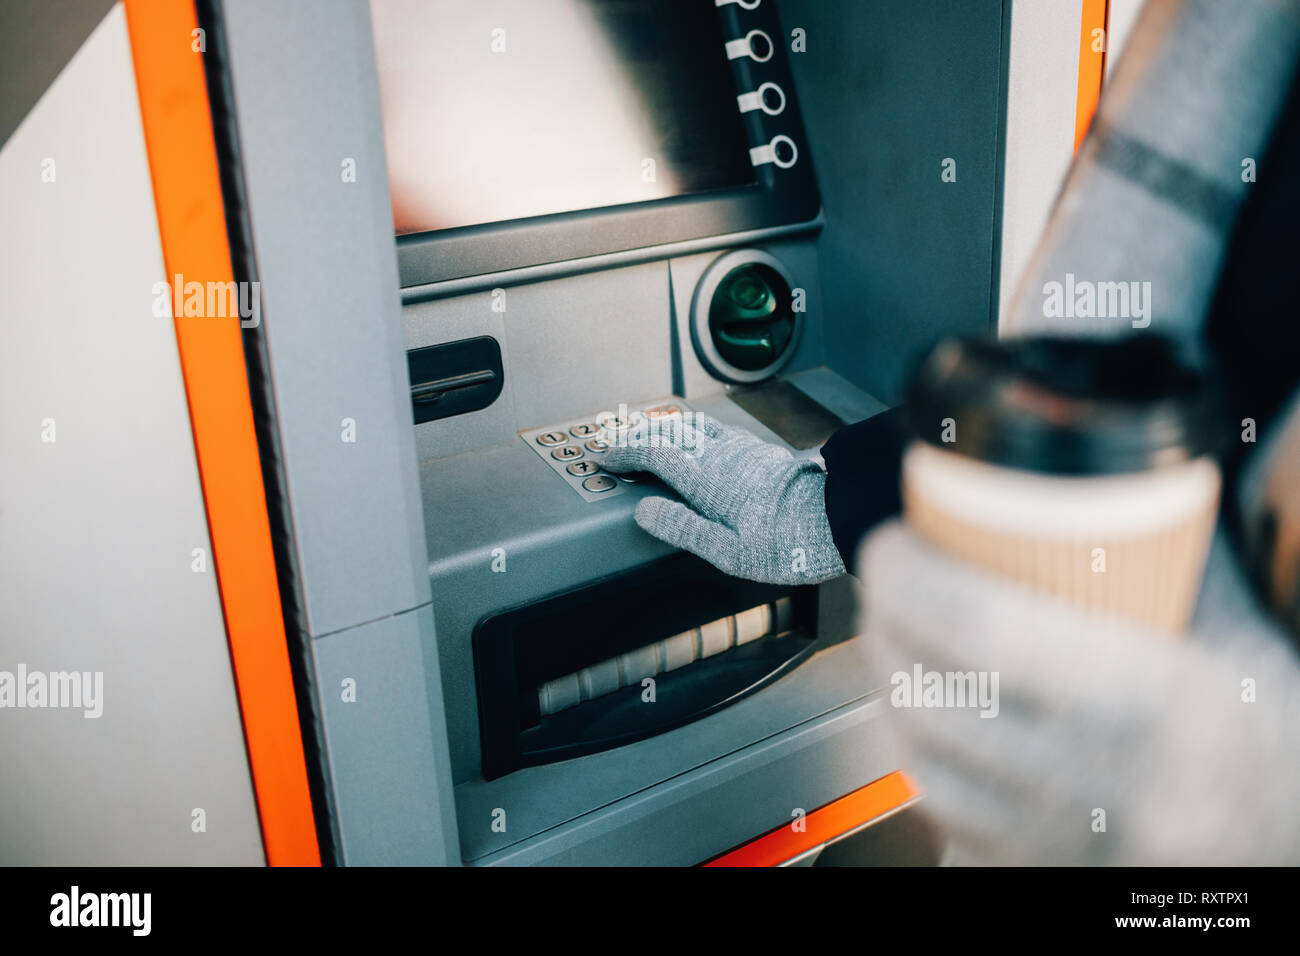 Unrecognizable young woman pressing buttons on ATM keypad entering PIN and drinking coffee on city street in winter day, close-up. - Stock Image